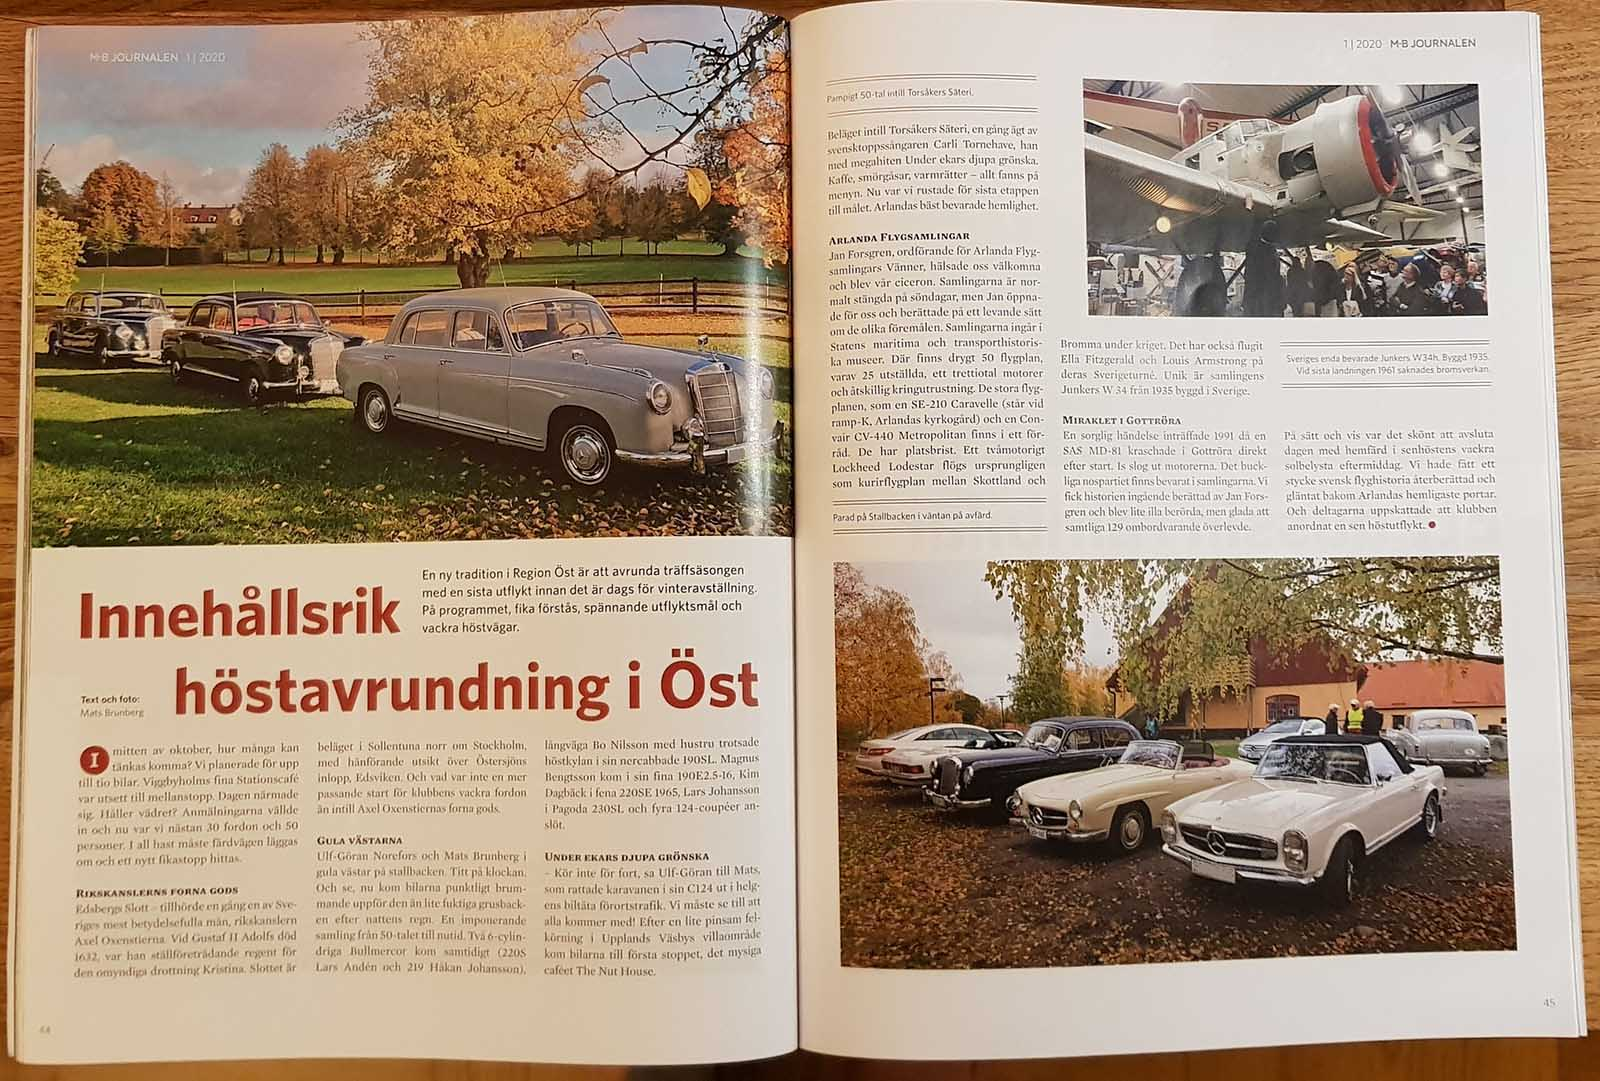 My Mercedes-Benz 219 Ponton -57 in MB Journalen, the club magazine of Mercedes-Benz Klubben Sverige